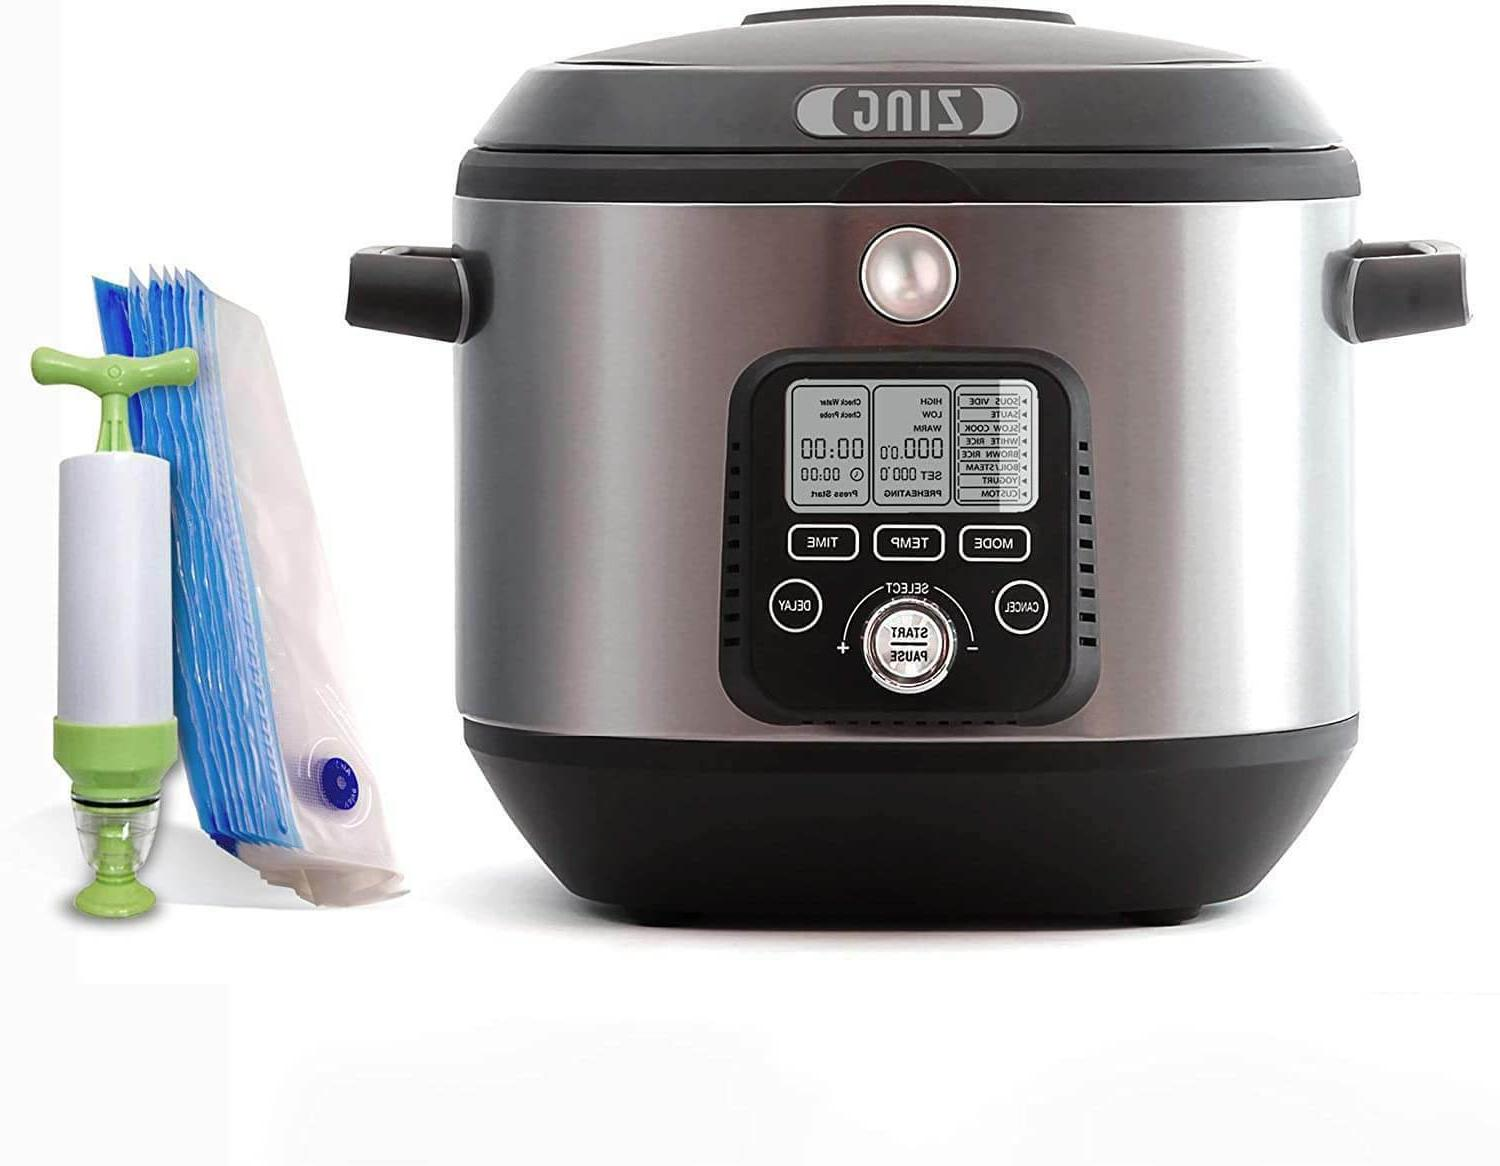 sous vide programmable cooker 8 in1 one